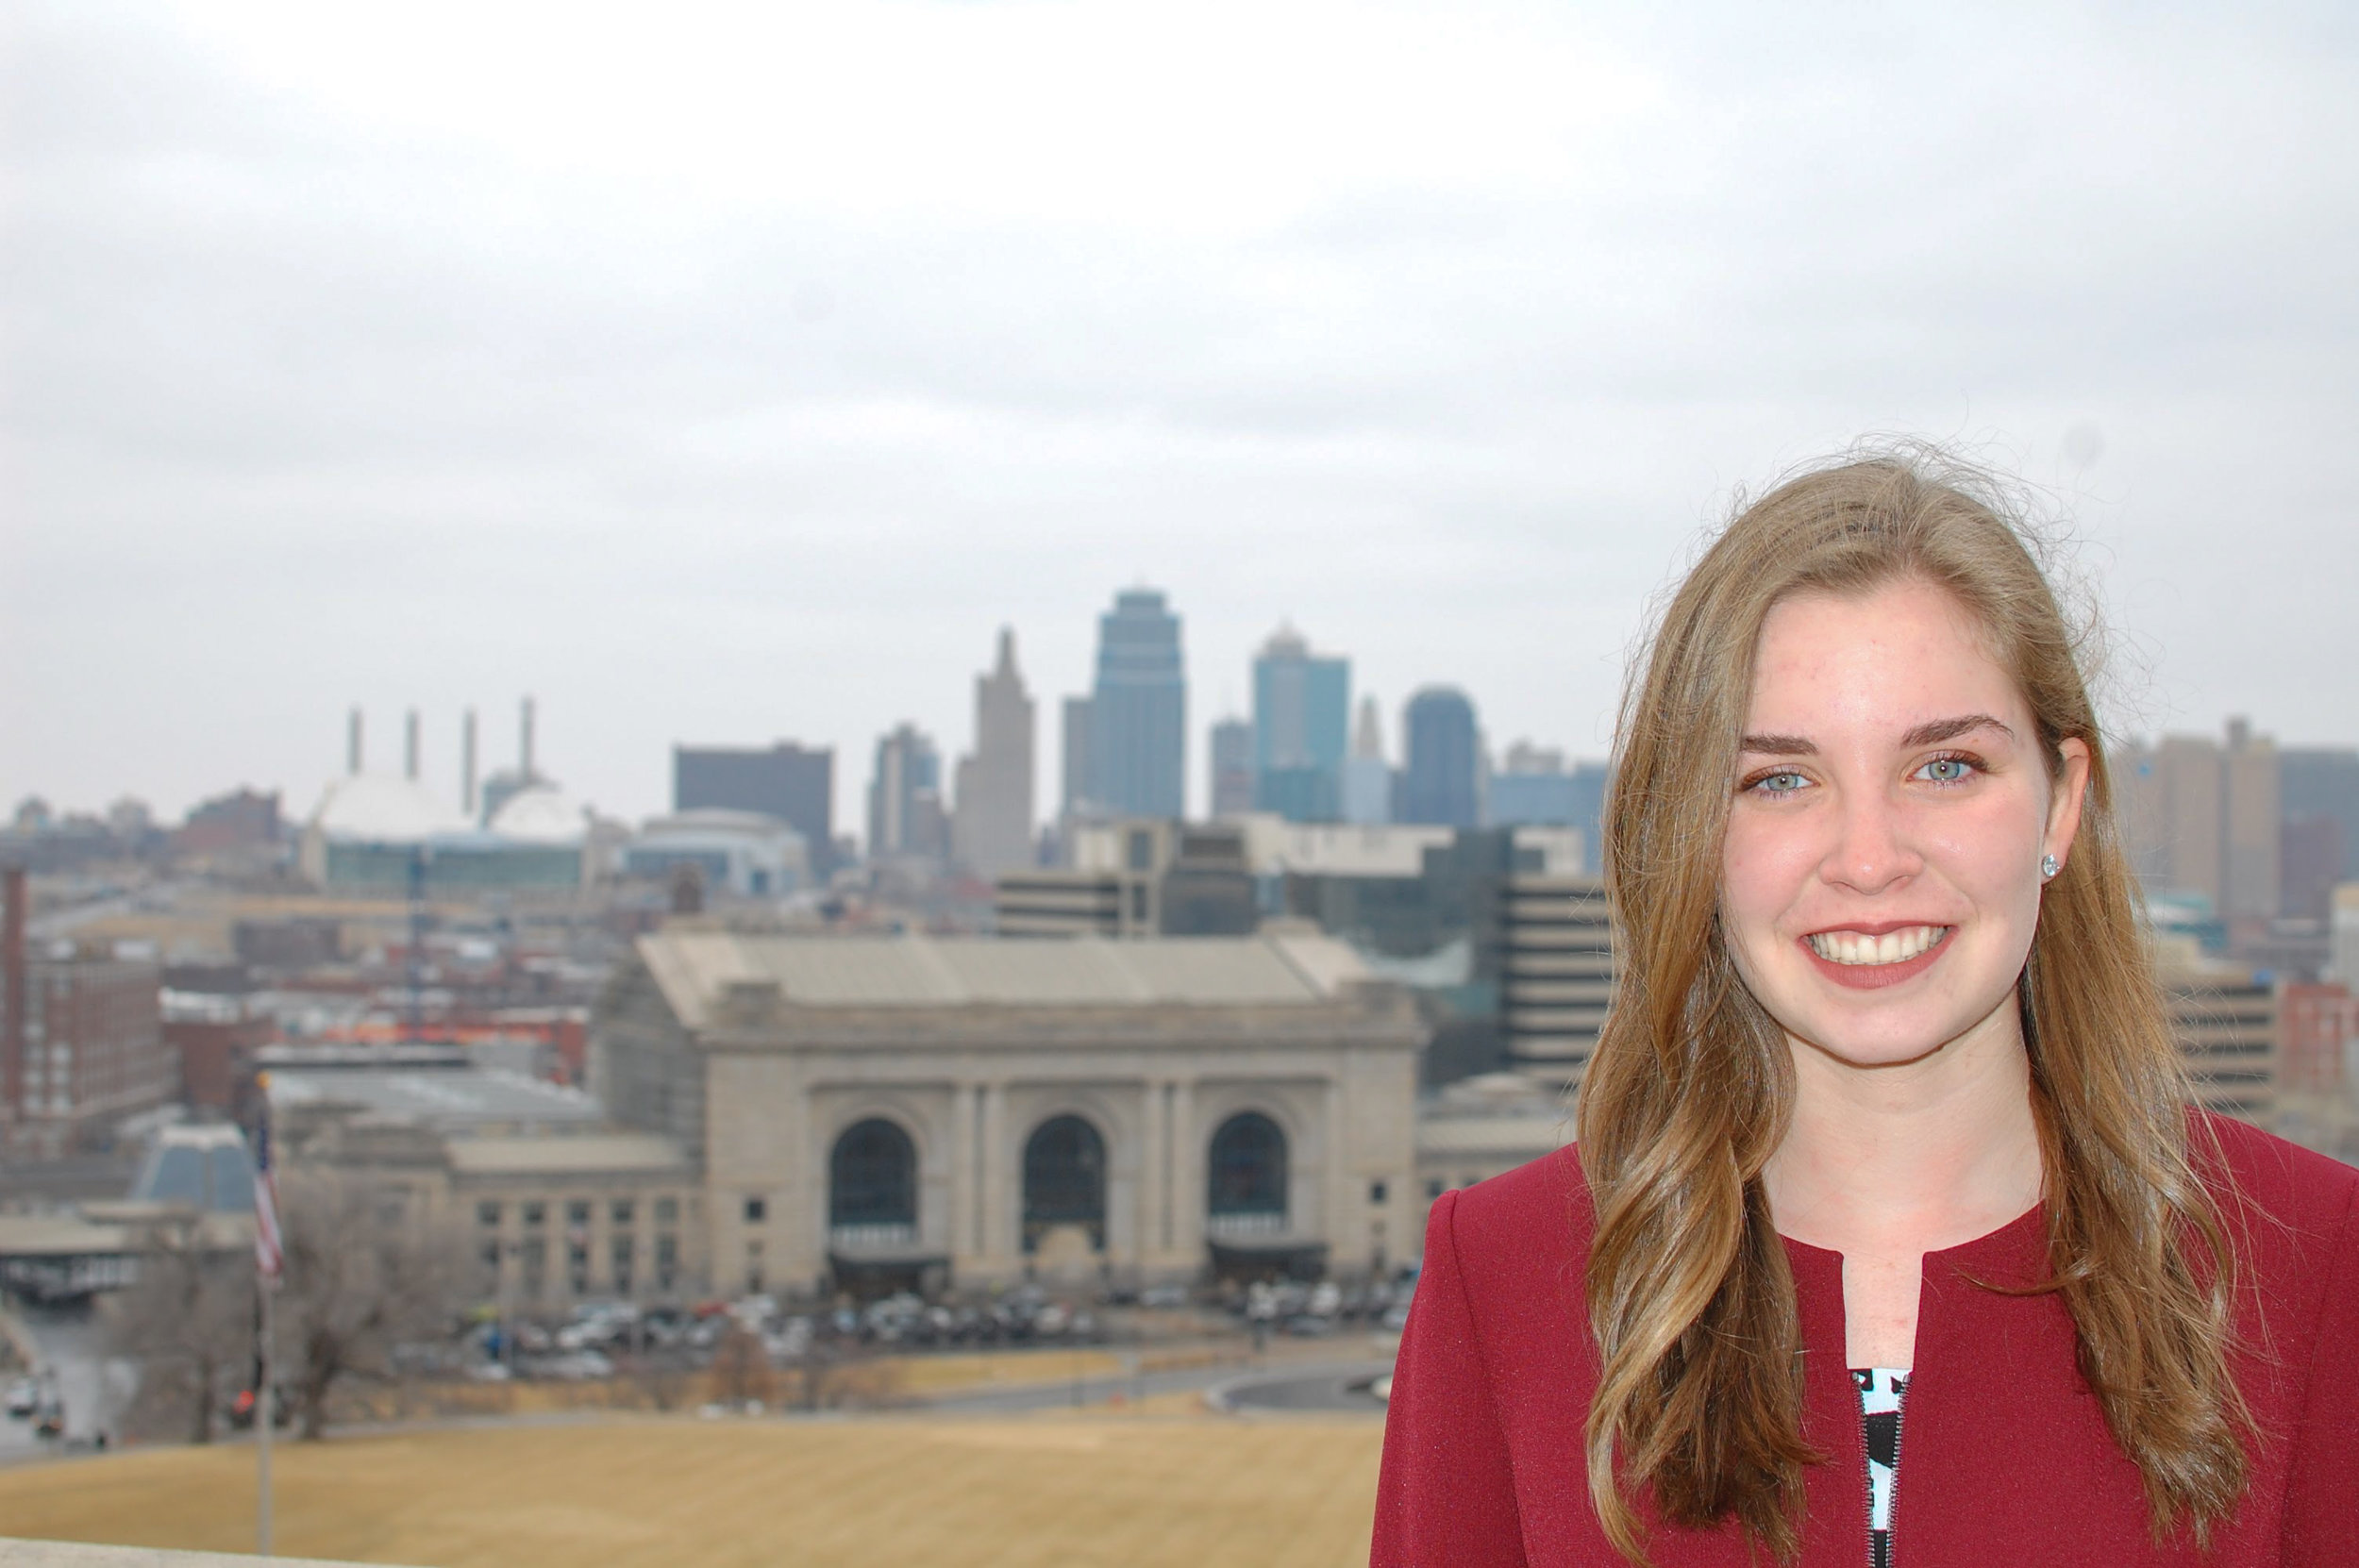 Summit Christian Academy senior Rachel Moore is one of six Missourians to complete the Gold Medal Level for the Congressional Award for Youth Program.  Rachel will be honored by U.S. Congressional members at the gold medal awards ceremony in Washington D.C. this summer.